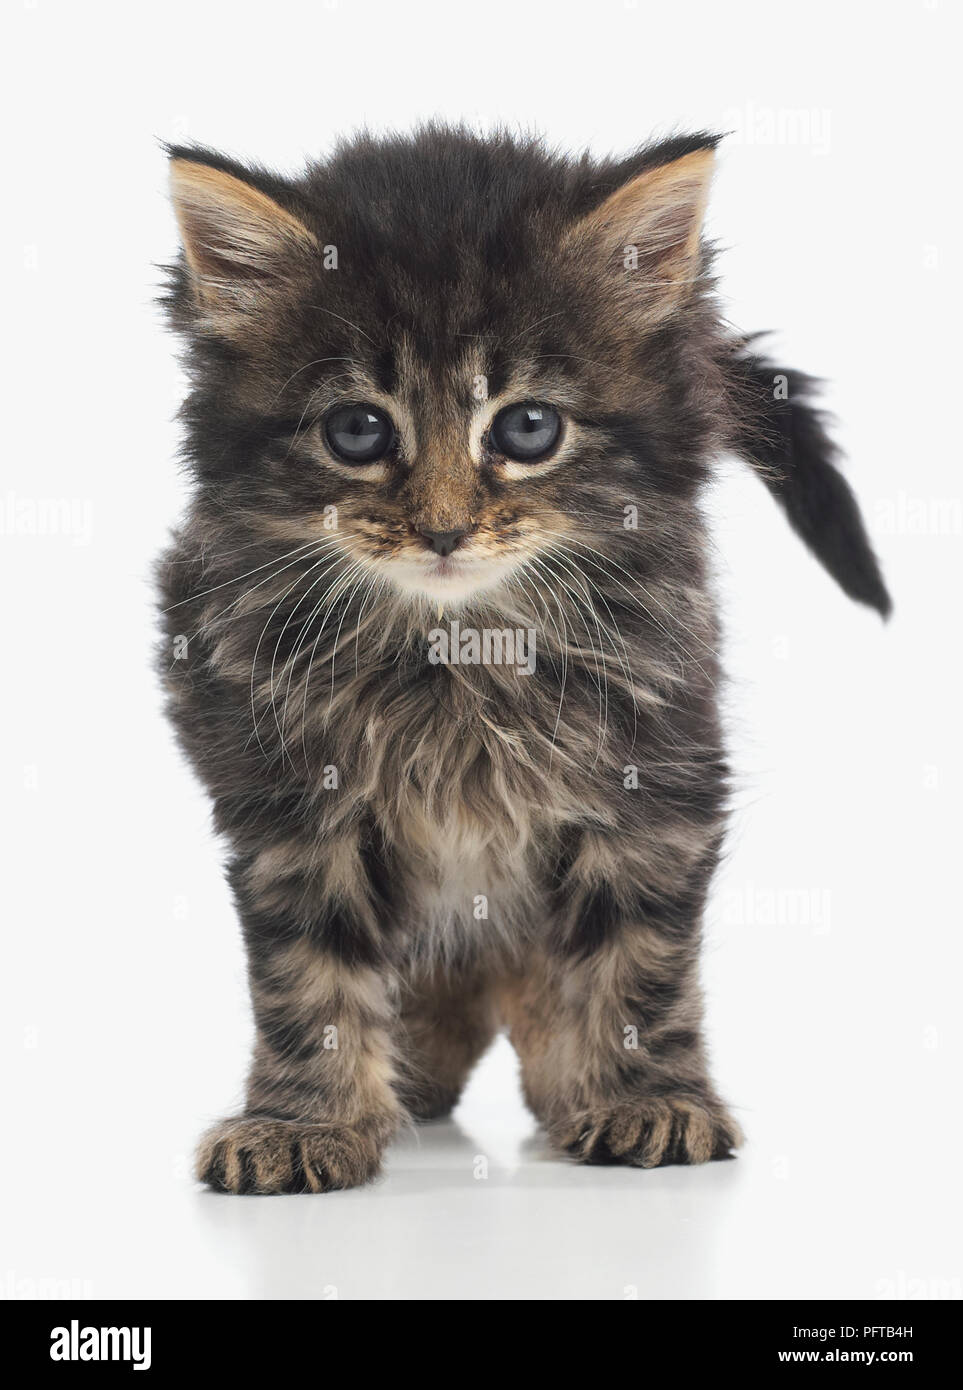 fluffy brown tabby kitten 8 week old stock photo 216279857 alamy